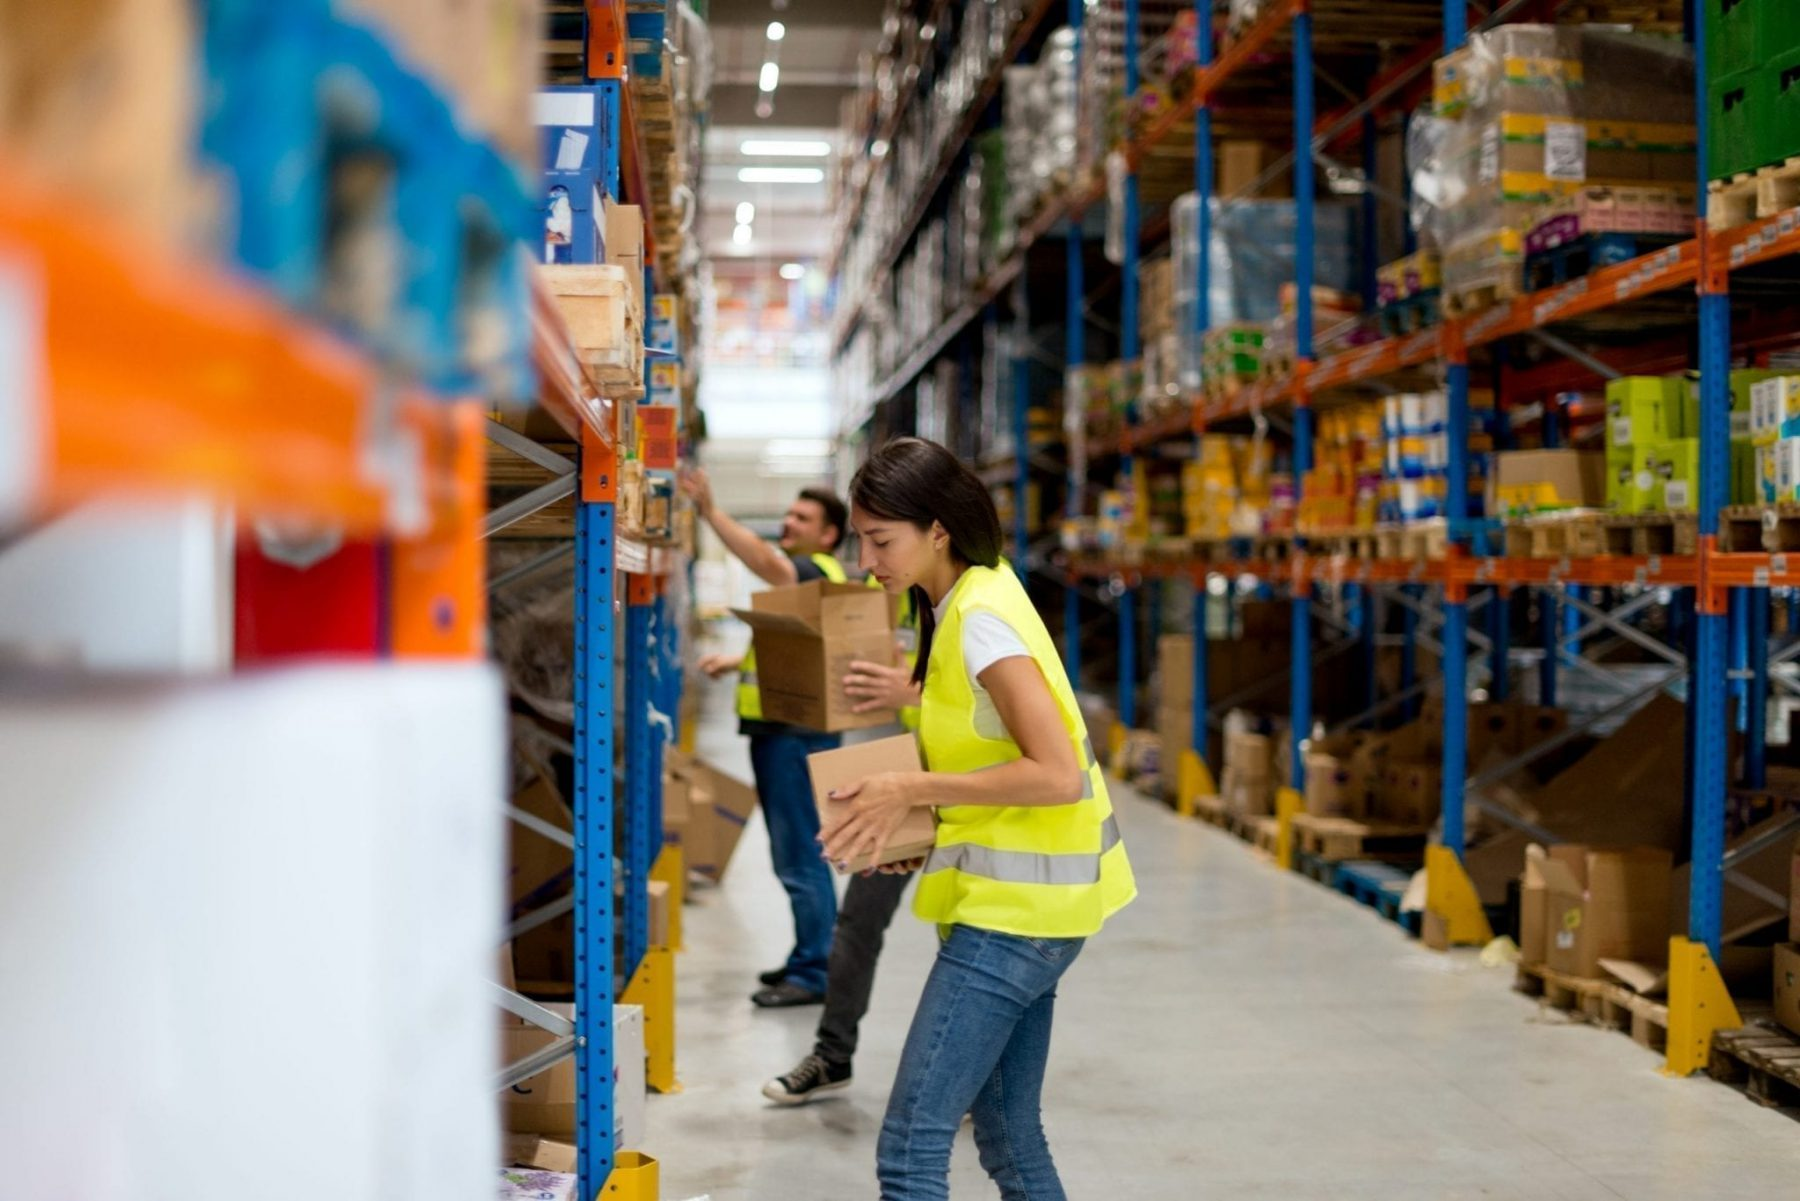 Warehouse workers are stacking goods onto the shelves